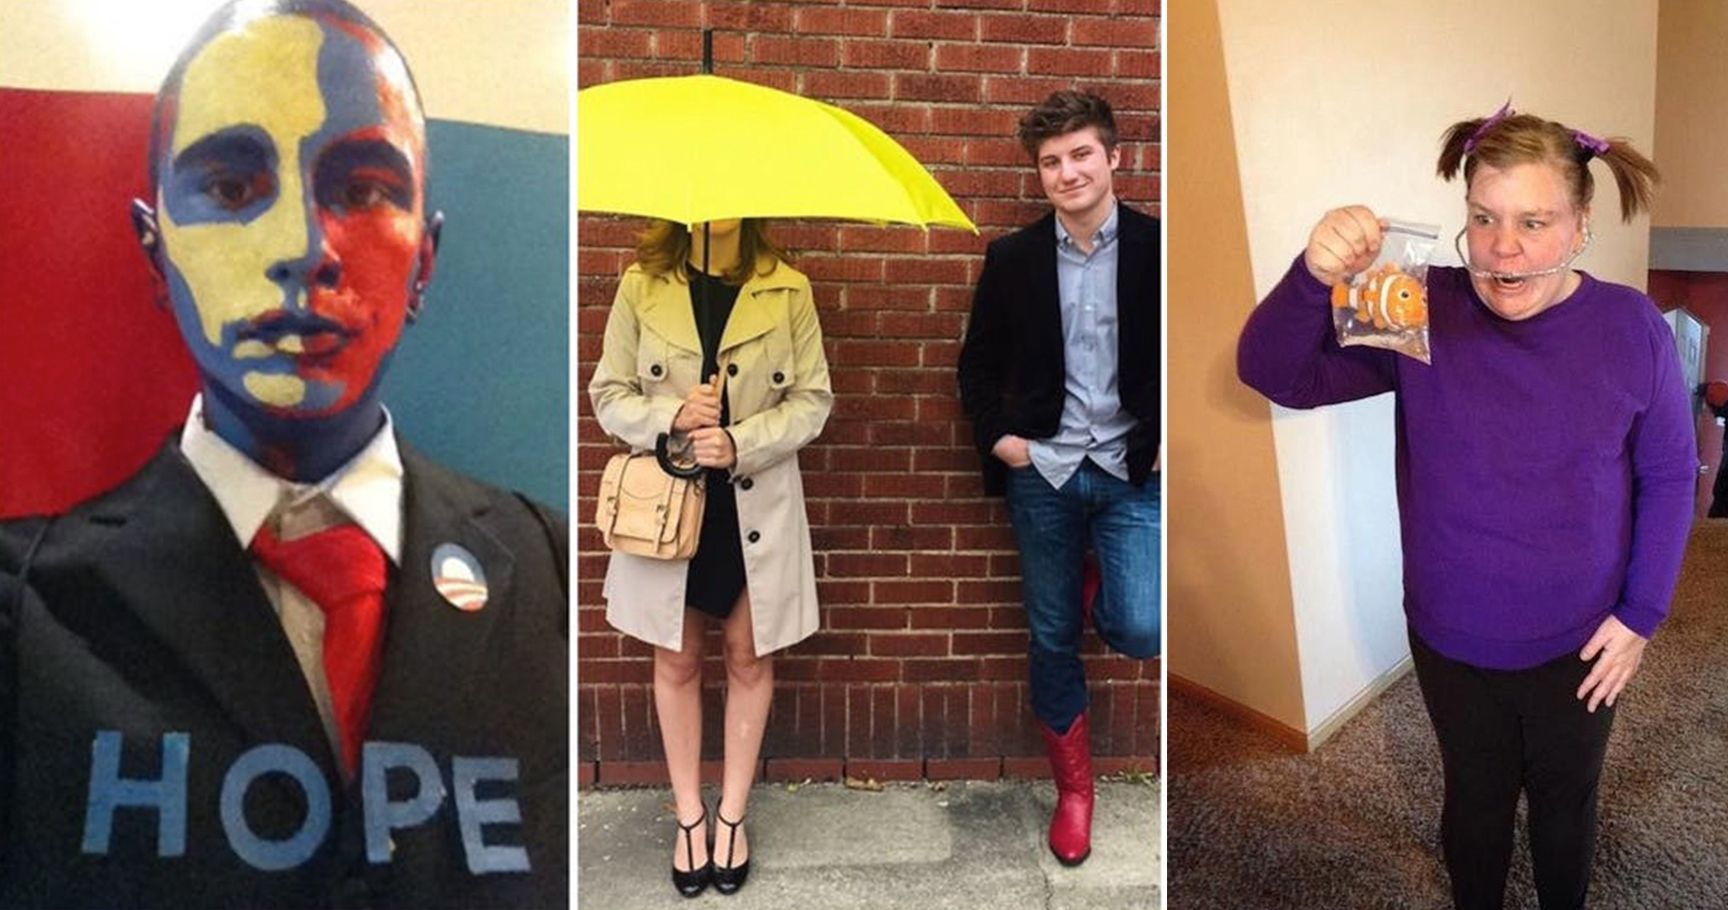 15 Insanely Clever Halloween Costumes That'll Actually Win Halloween